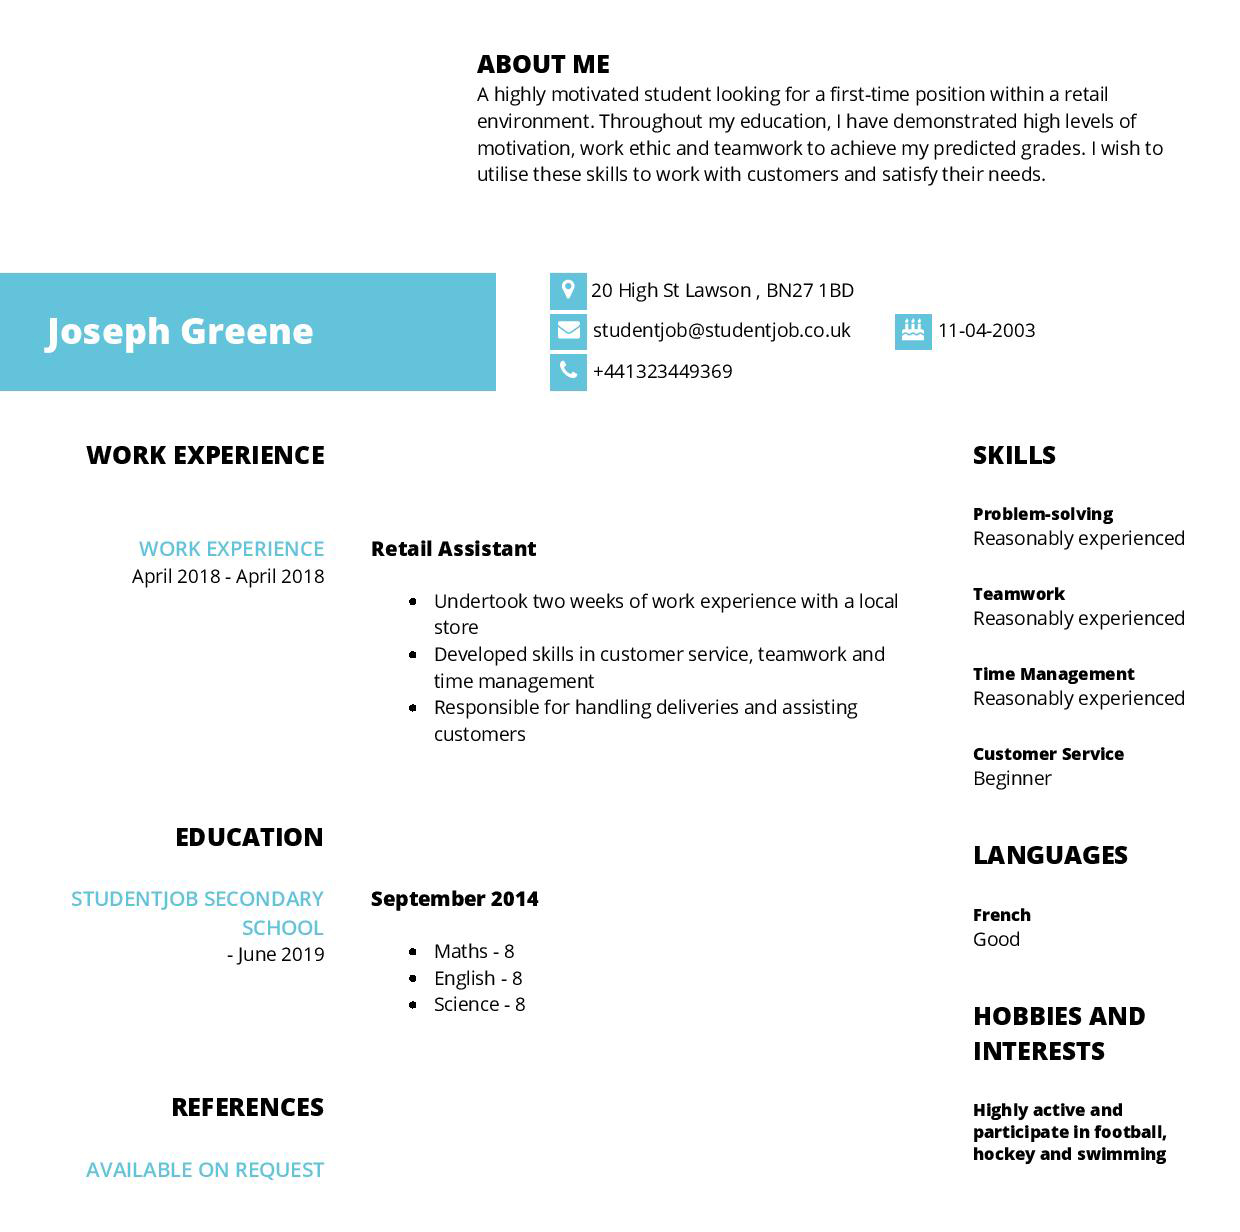 CV Examples | The Best CV Samples for 2019 | StudentJob UK